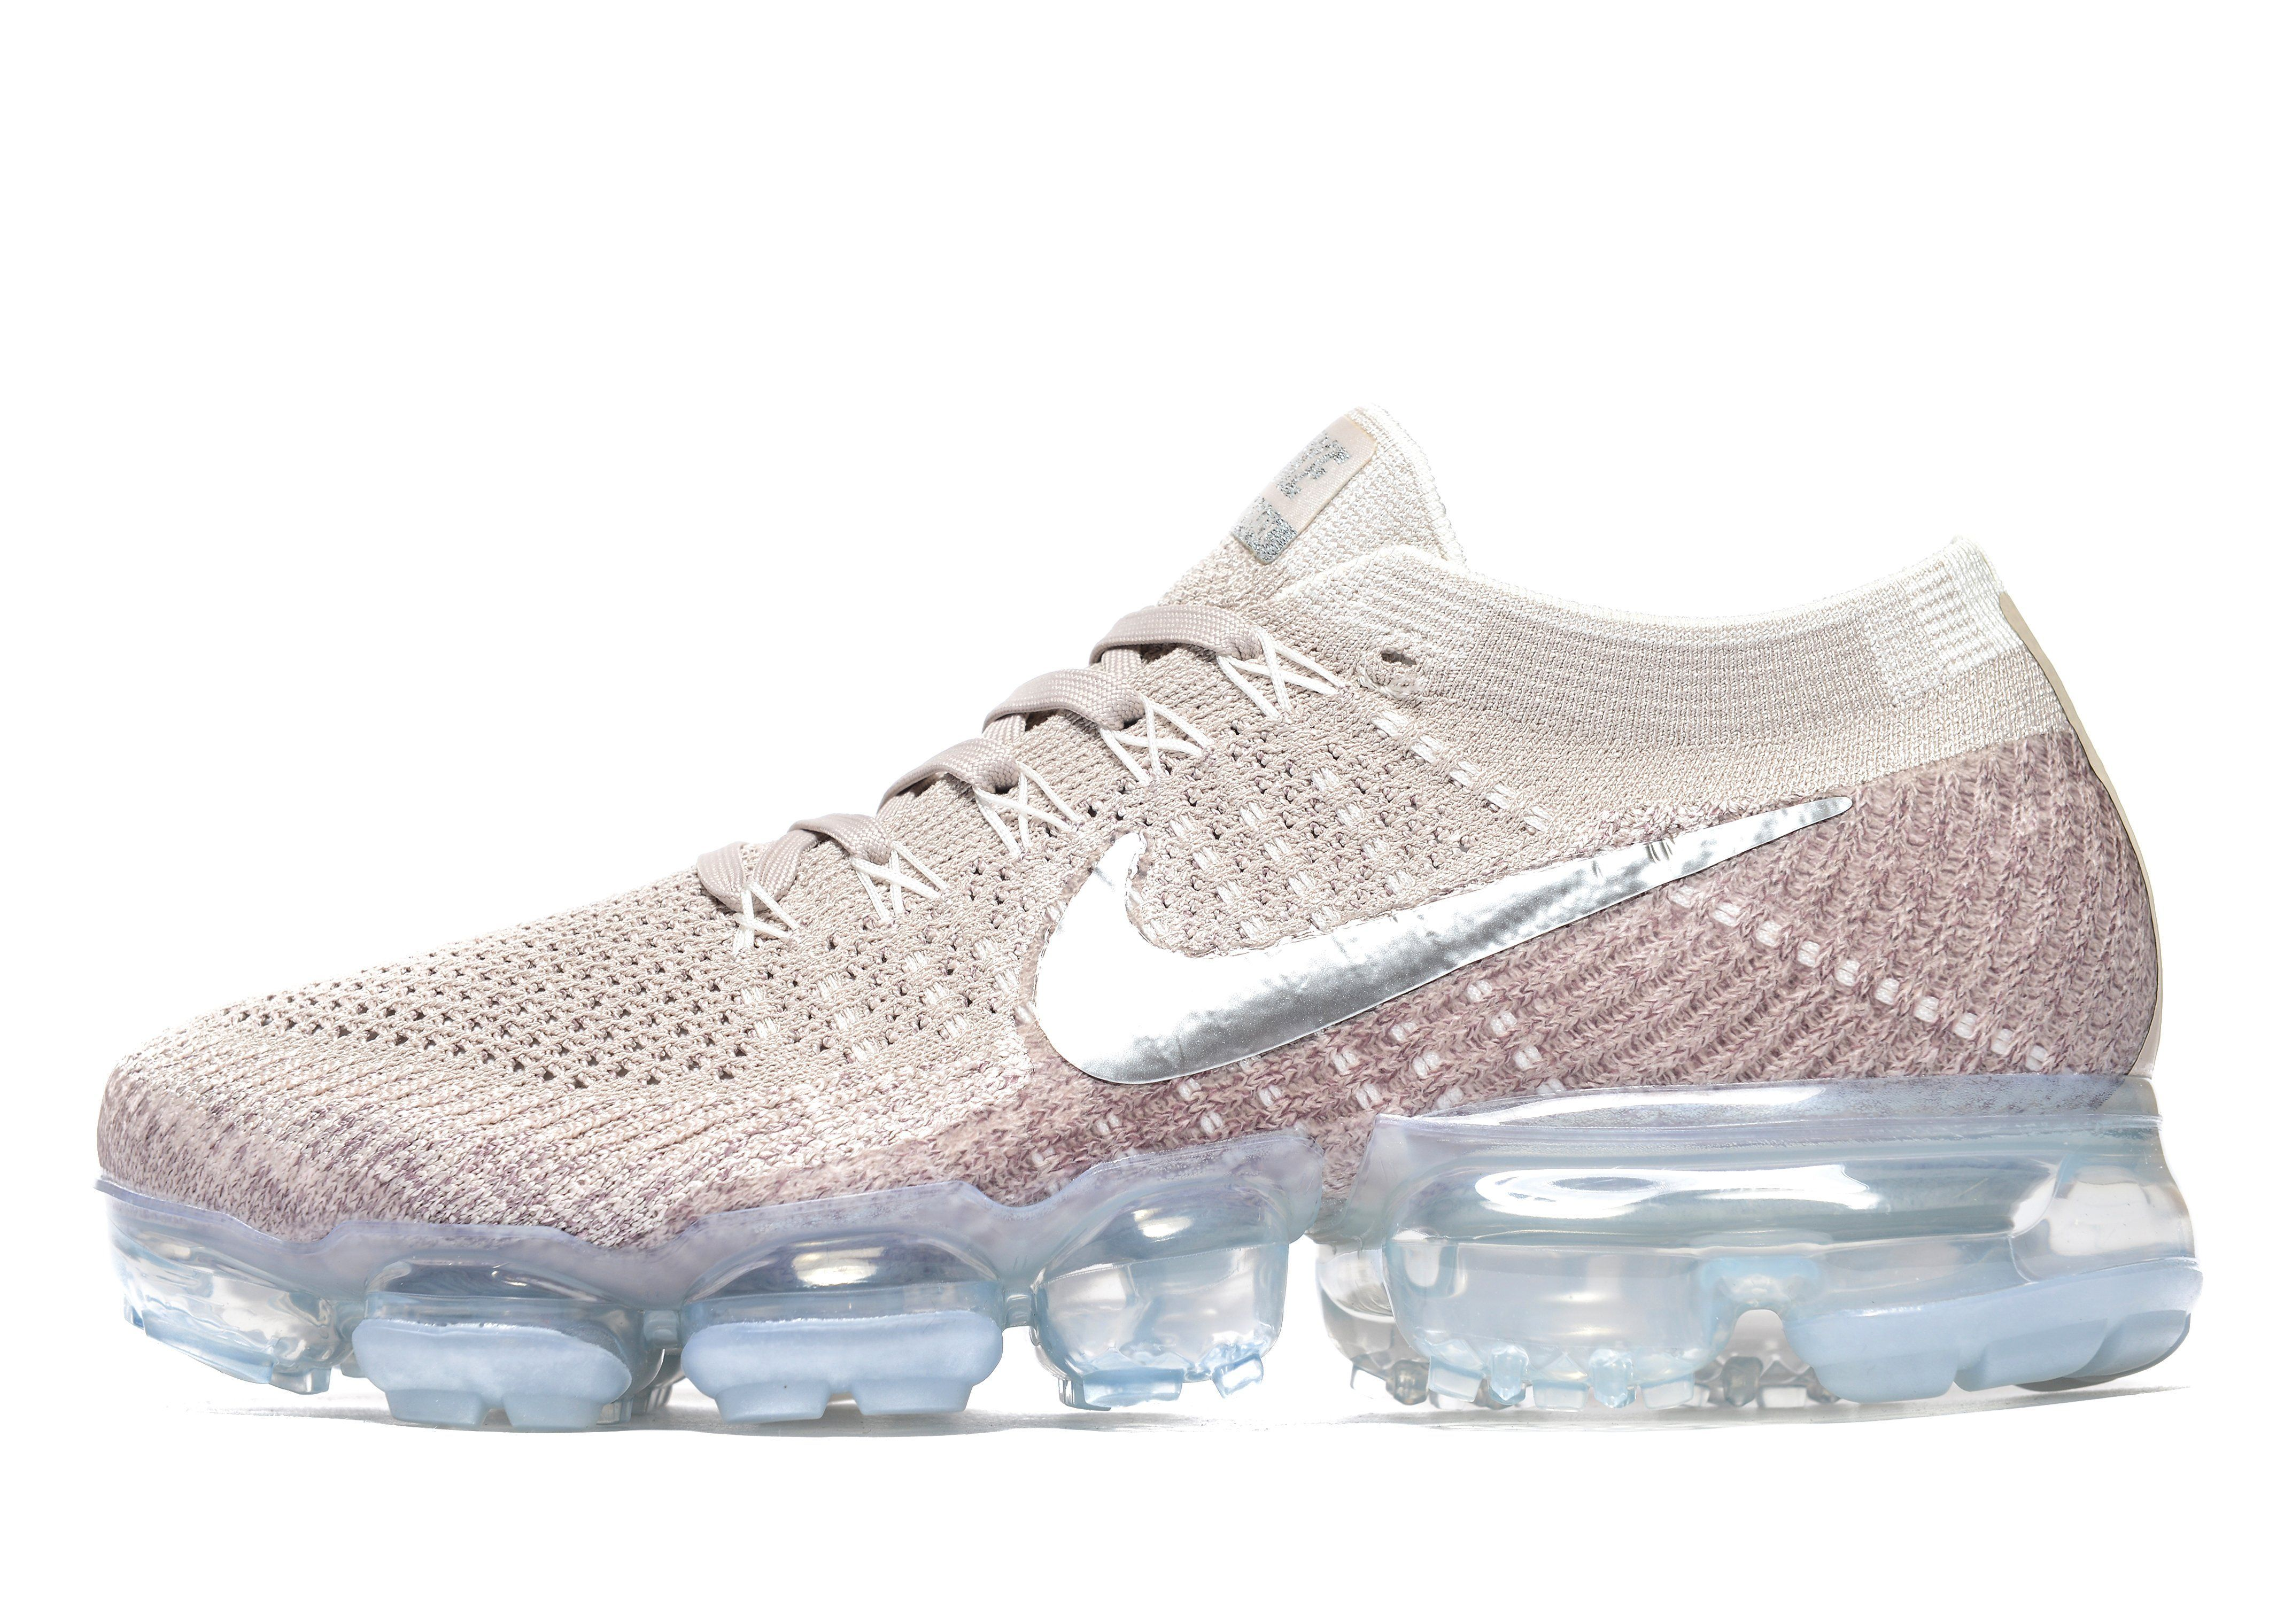 buy online 61550 677bc Nike Air VaporMax Women s - Shop online for Nike Air VaporMax Women s with JD  Sports, the UK s leading sports fashion retailer.